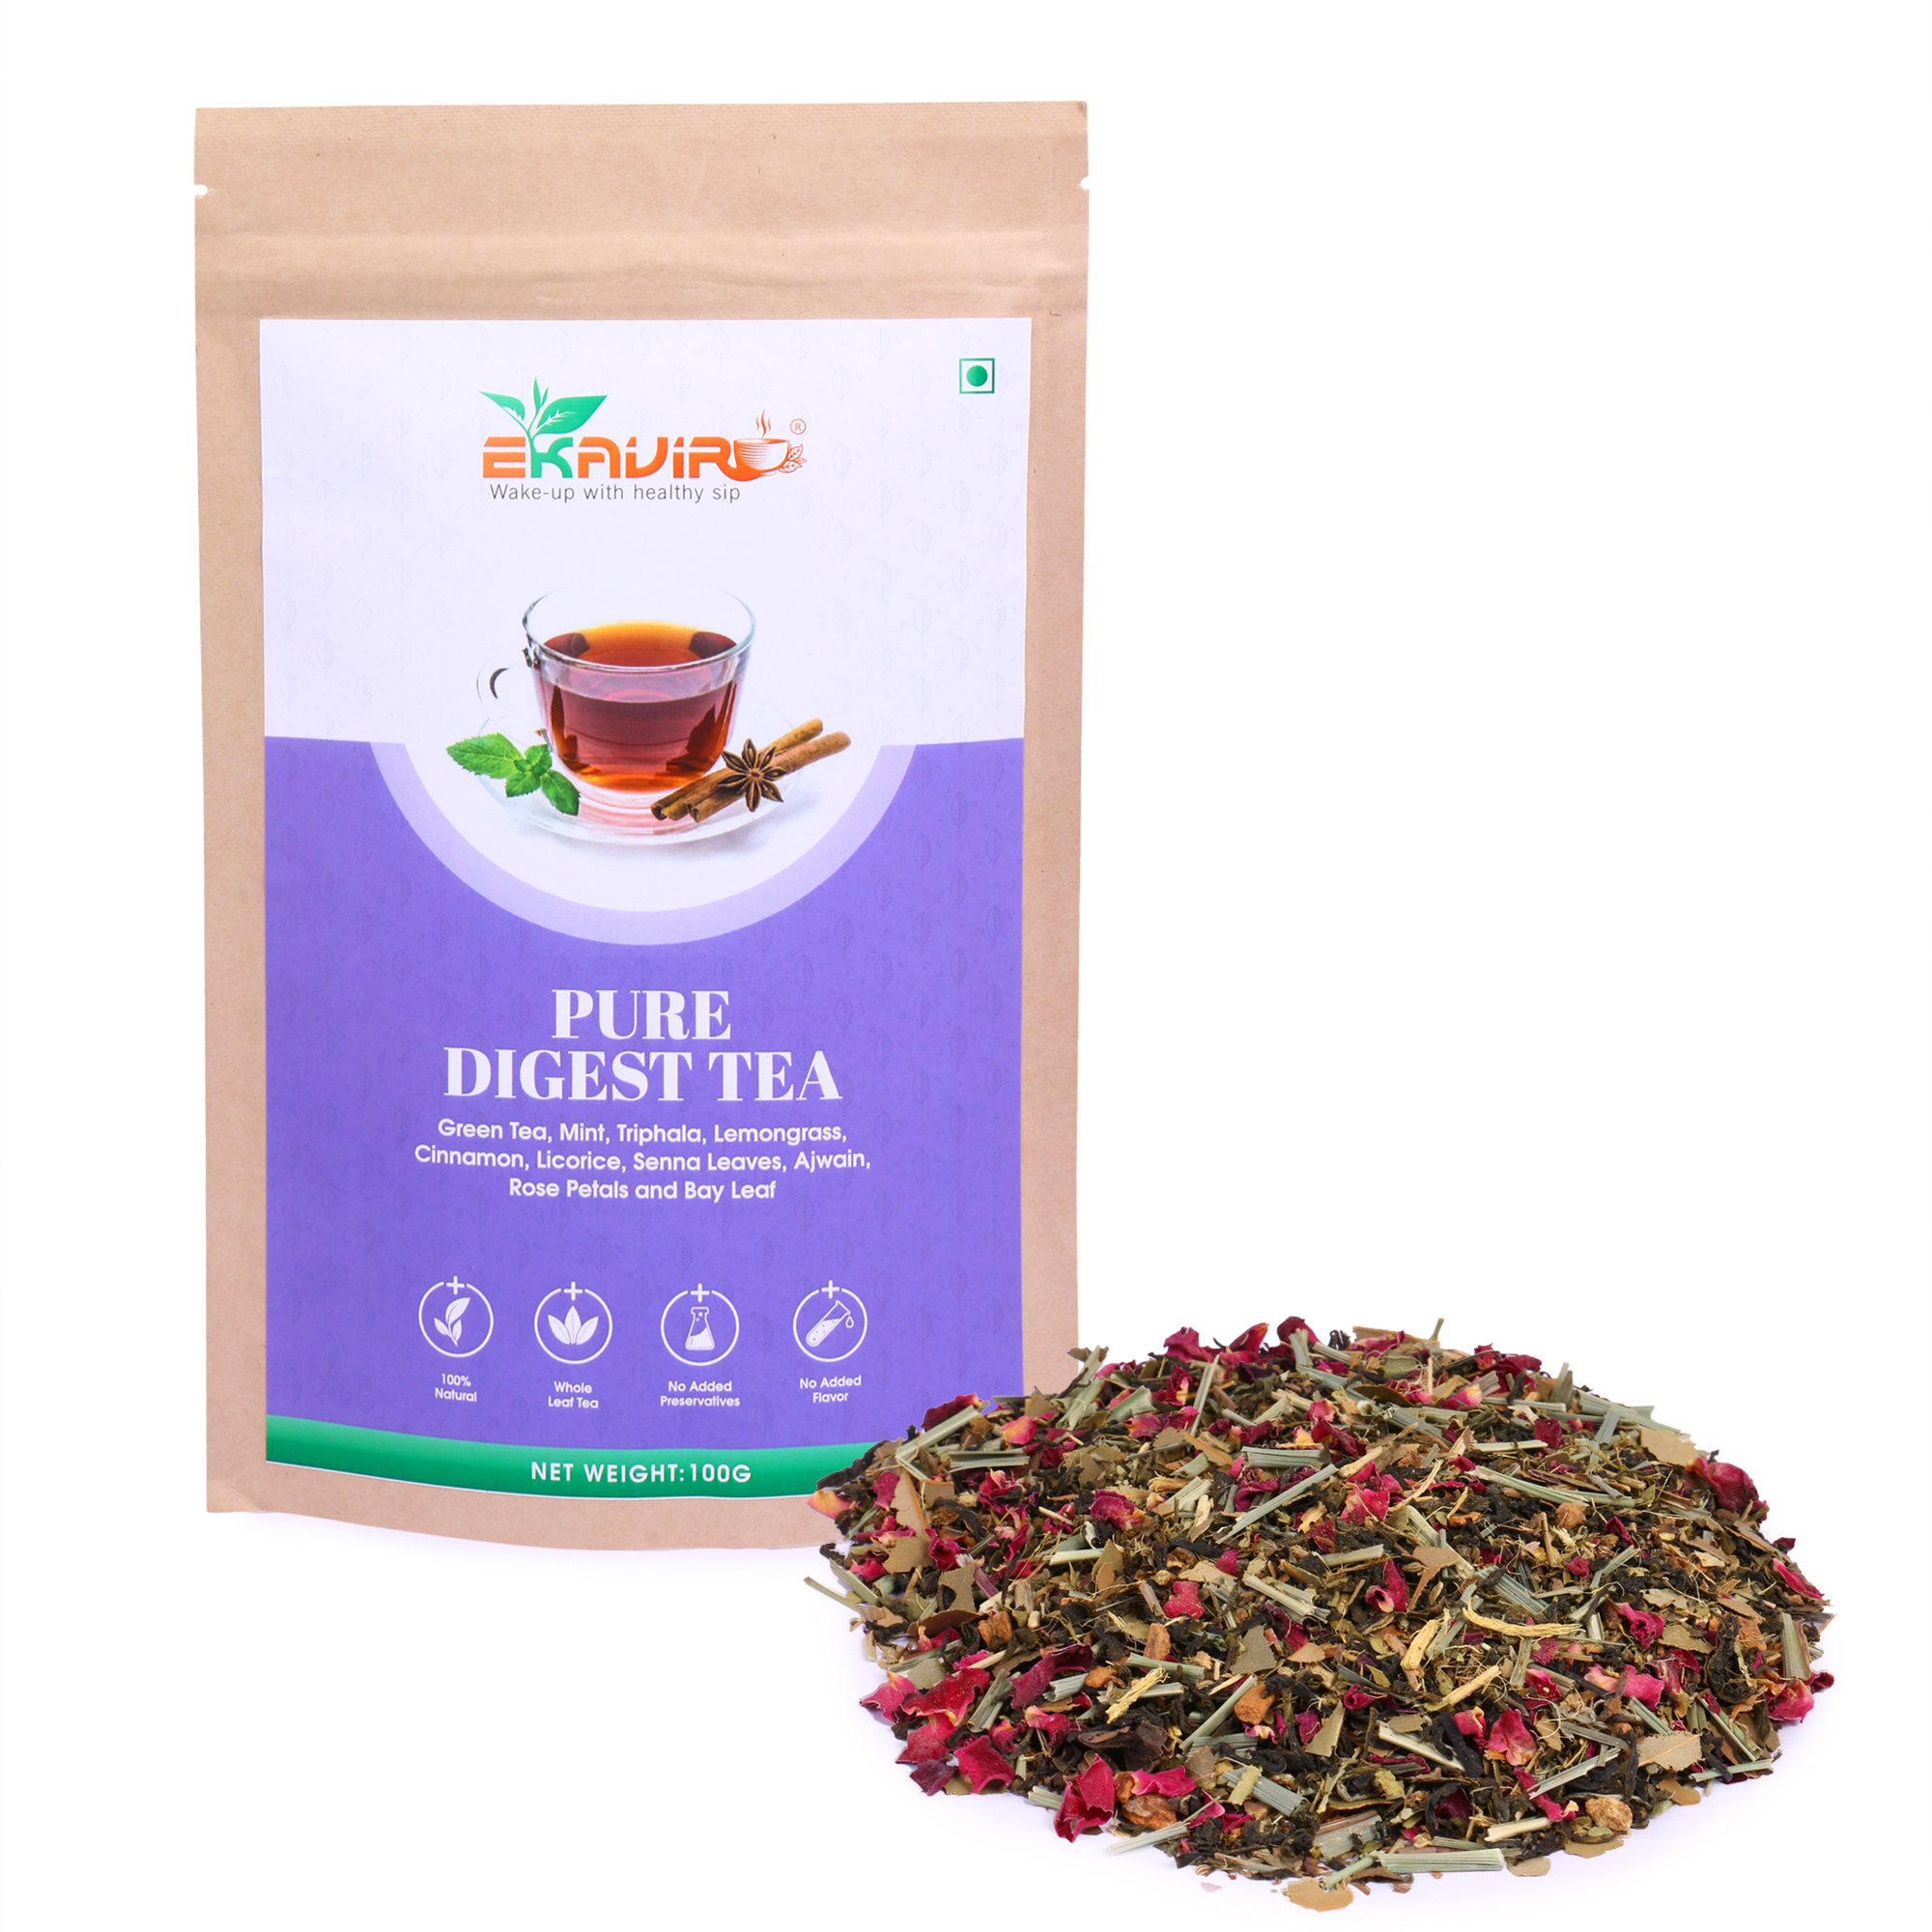 Ekavir Pure Digest Herbal Green Tea With Triphala, Mint, Rose Petals helps for Weight Loss Feel Relax and Refresh